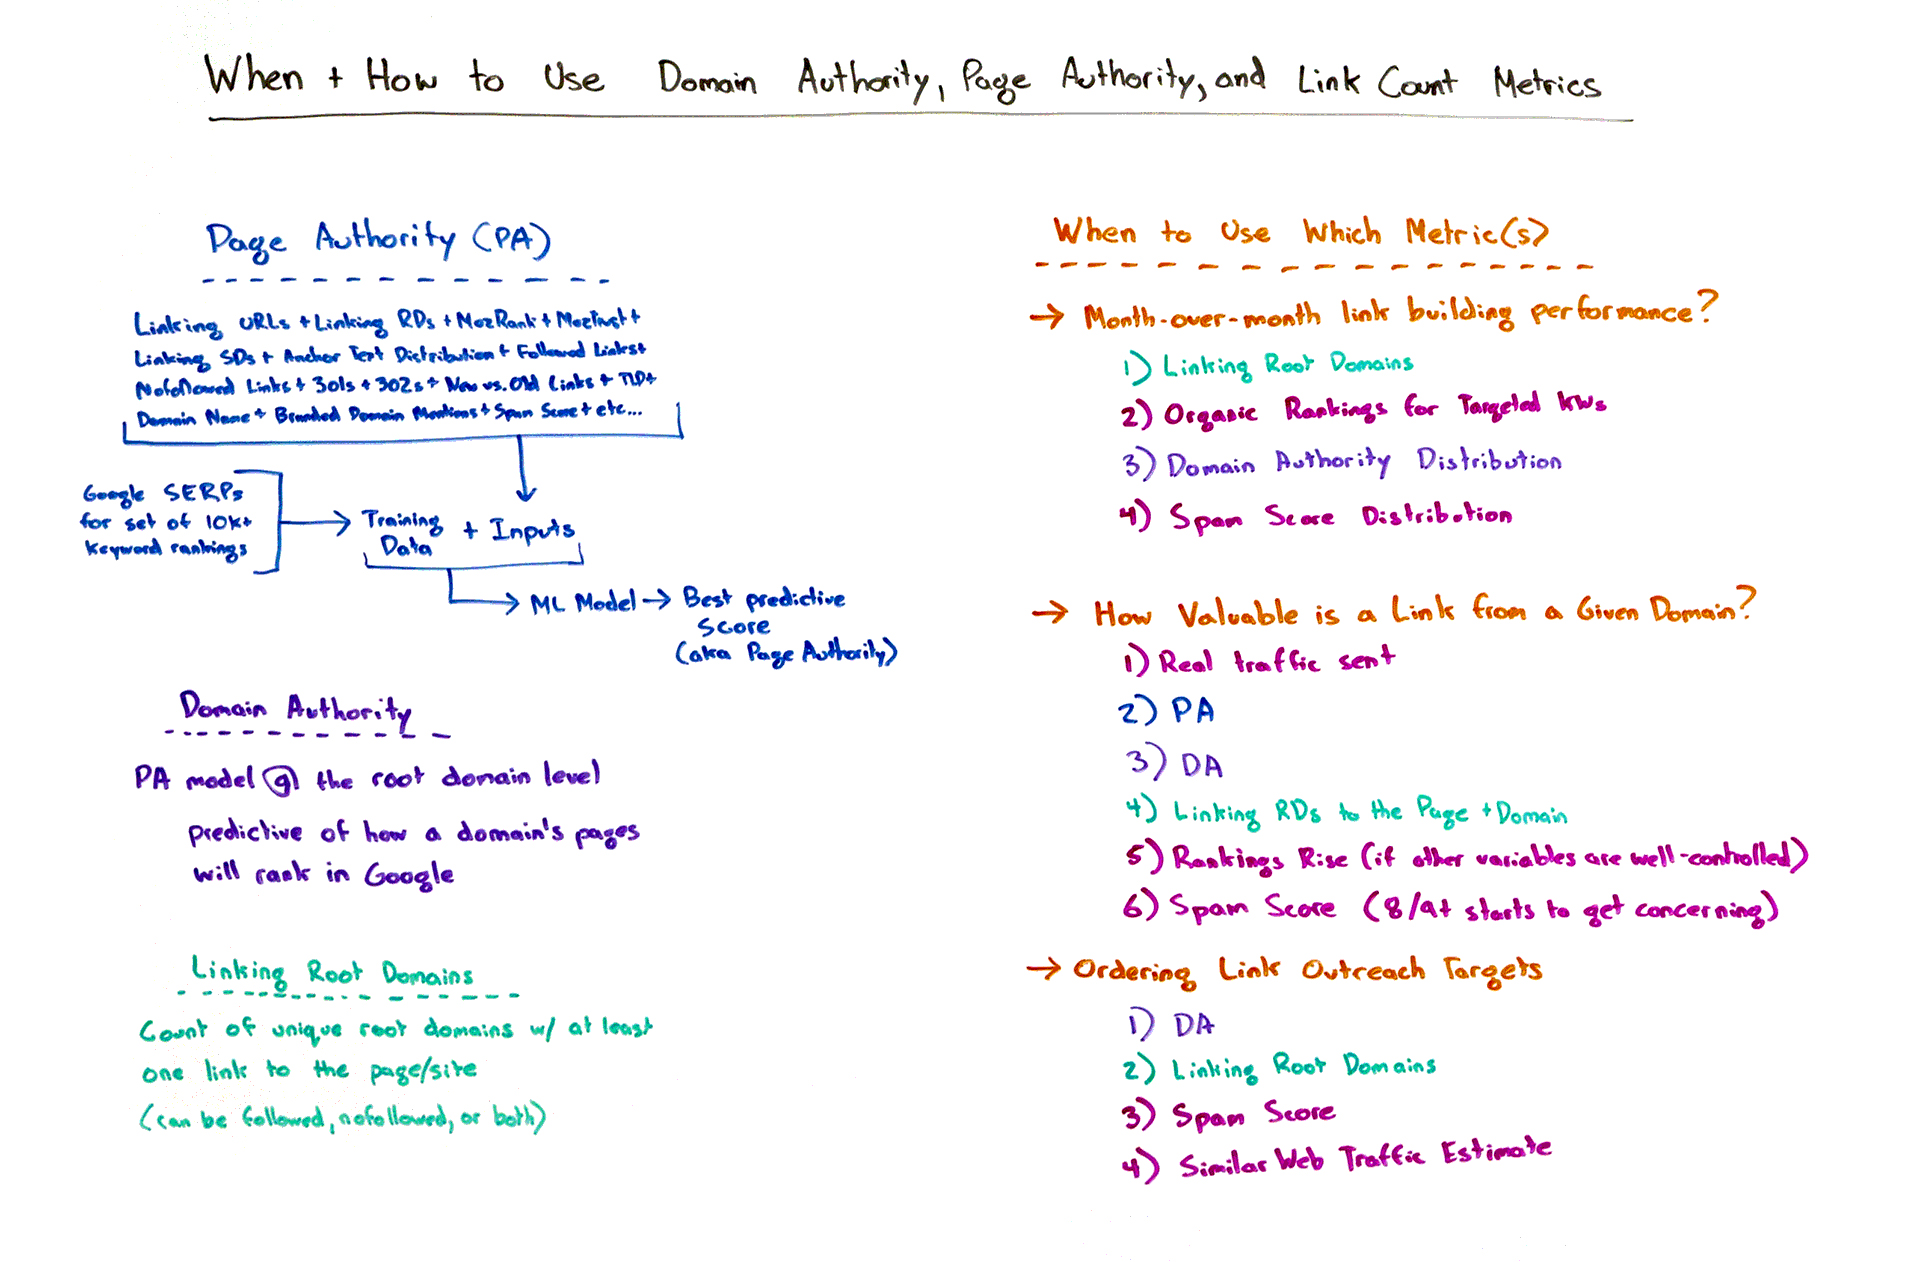 When and how to use Domain Authority, Page Authority, and link count metrics.